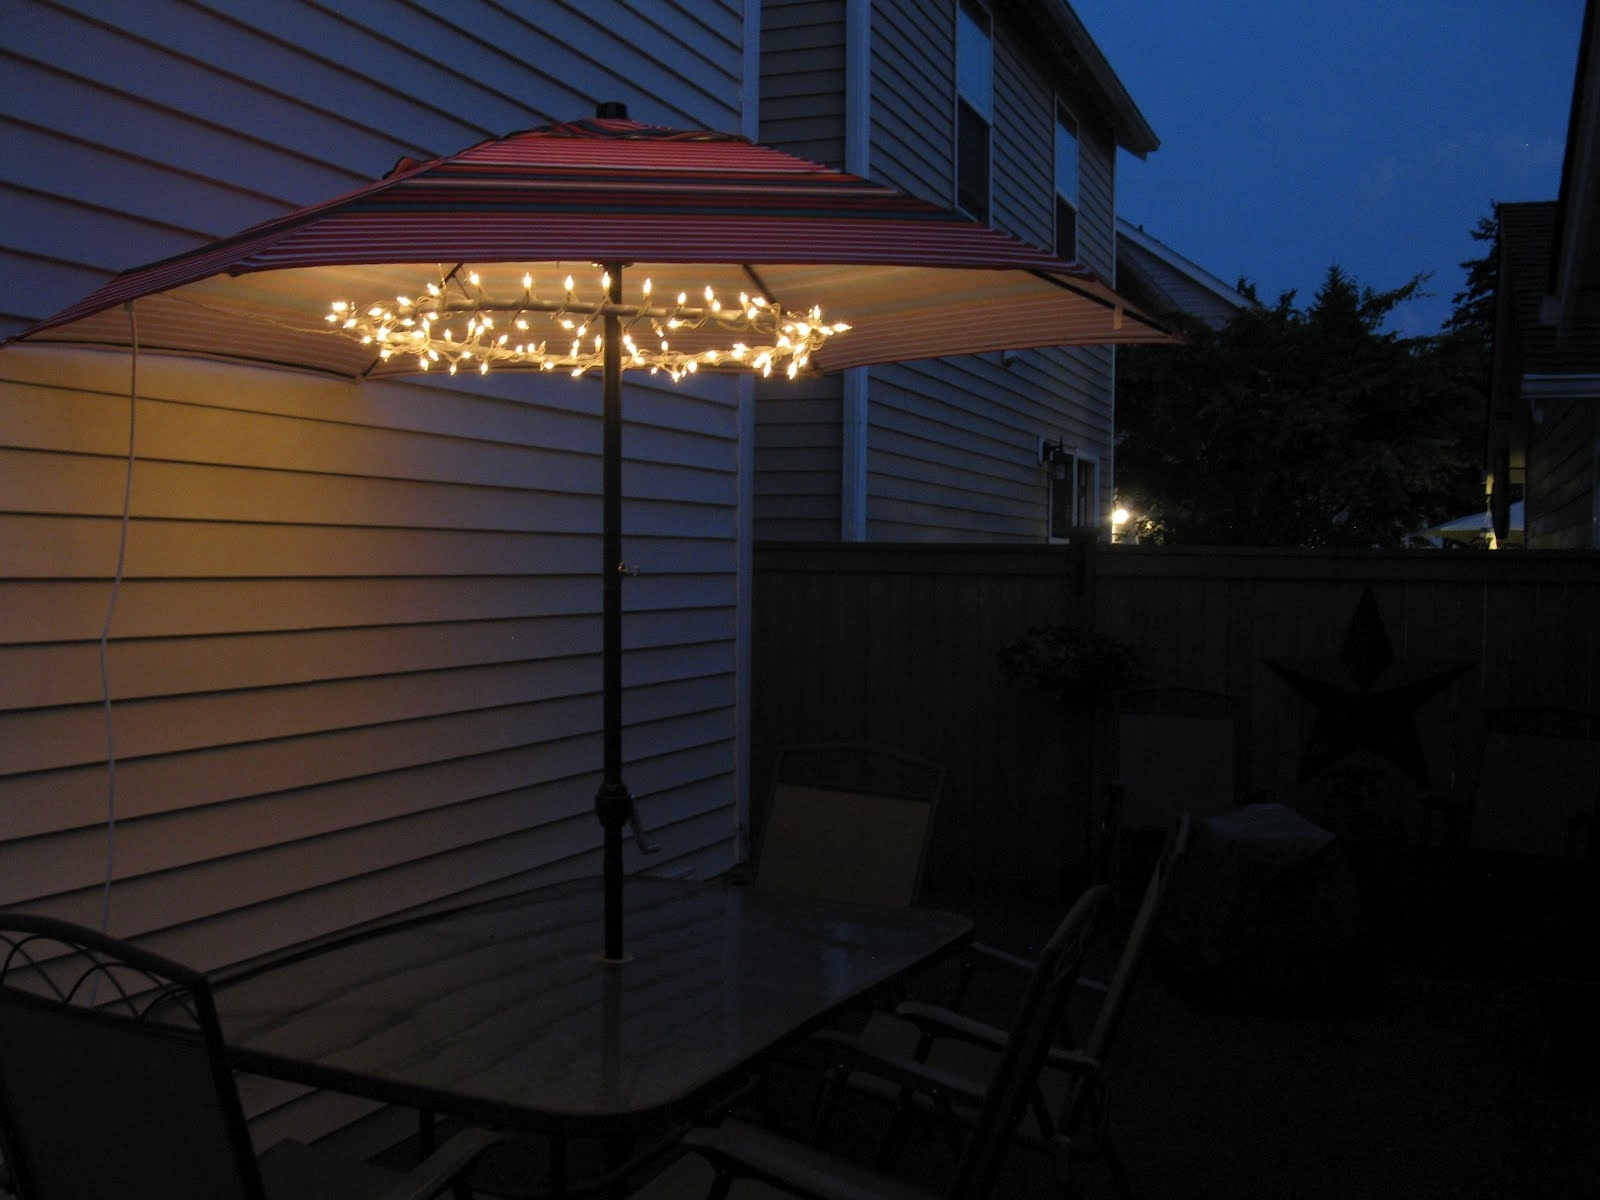 Great Patio Umbrellas With Lights Patio Umbrella Lights For The pertaining to Outdoor Umbrella Lanterns (Image 7 of 20)